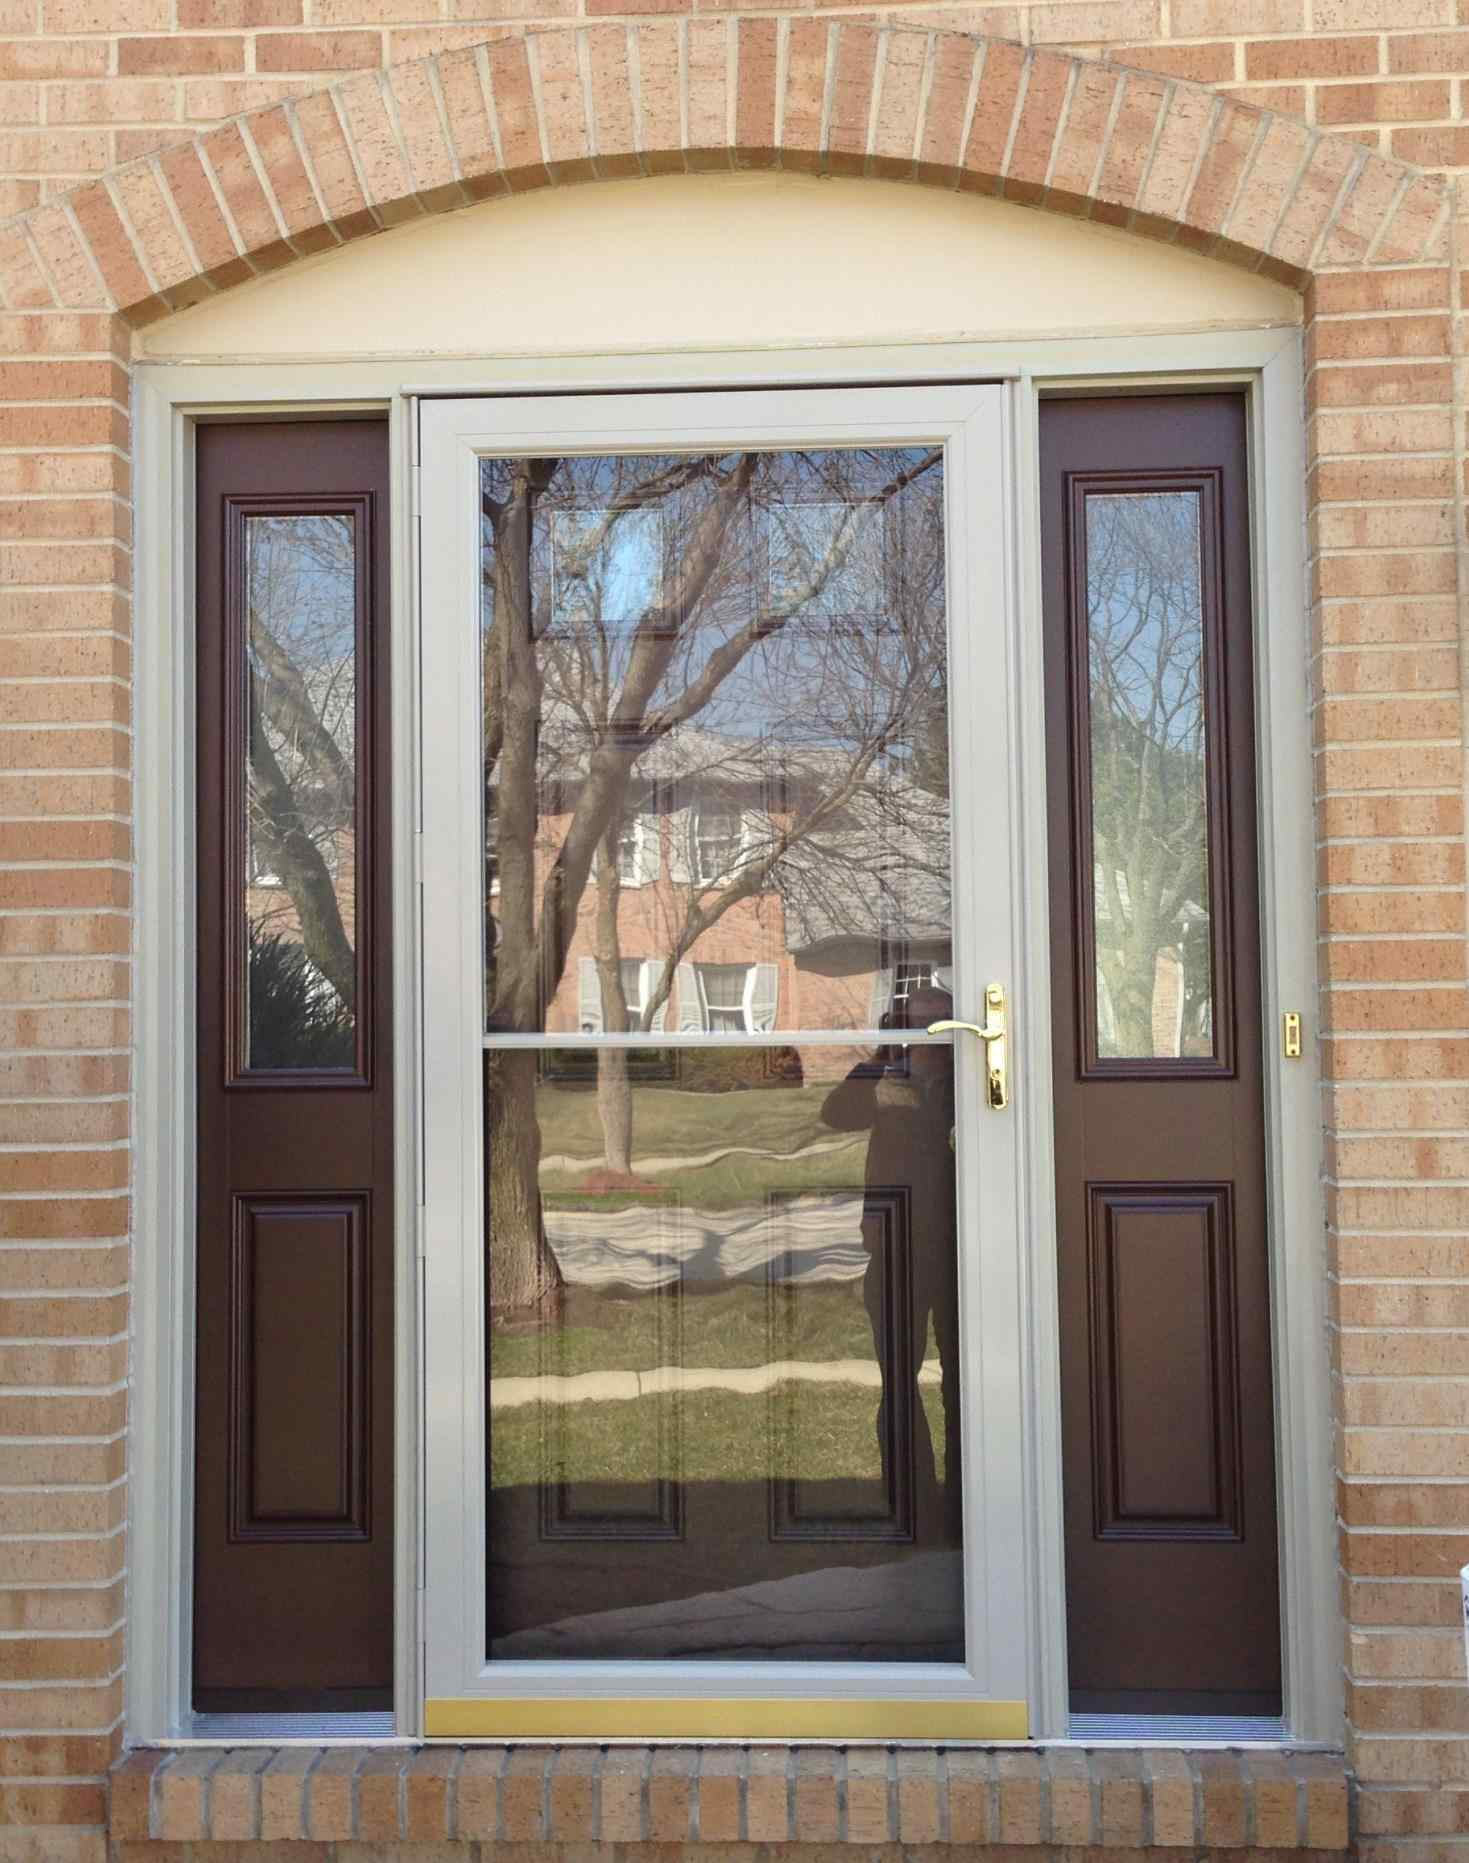 rosco french doors interior photo - 2